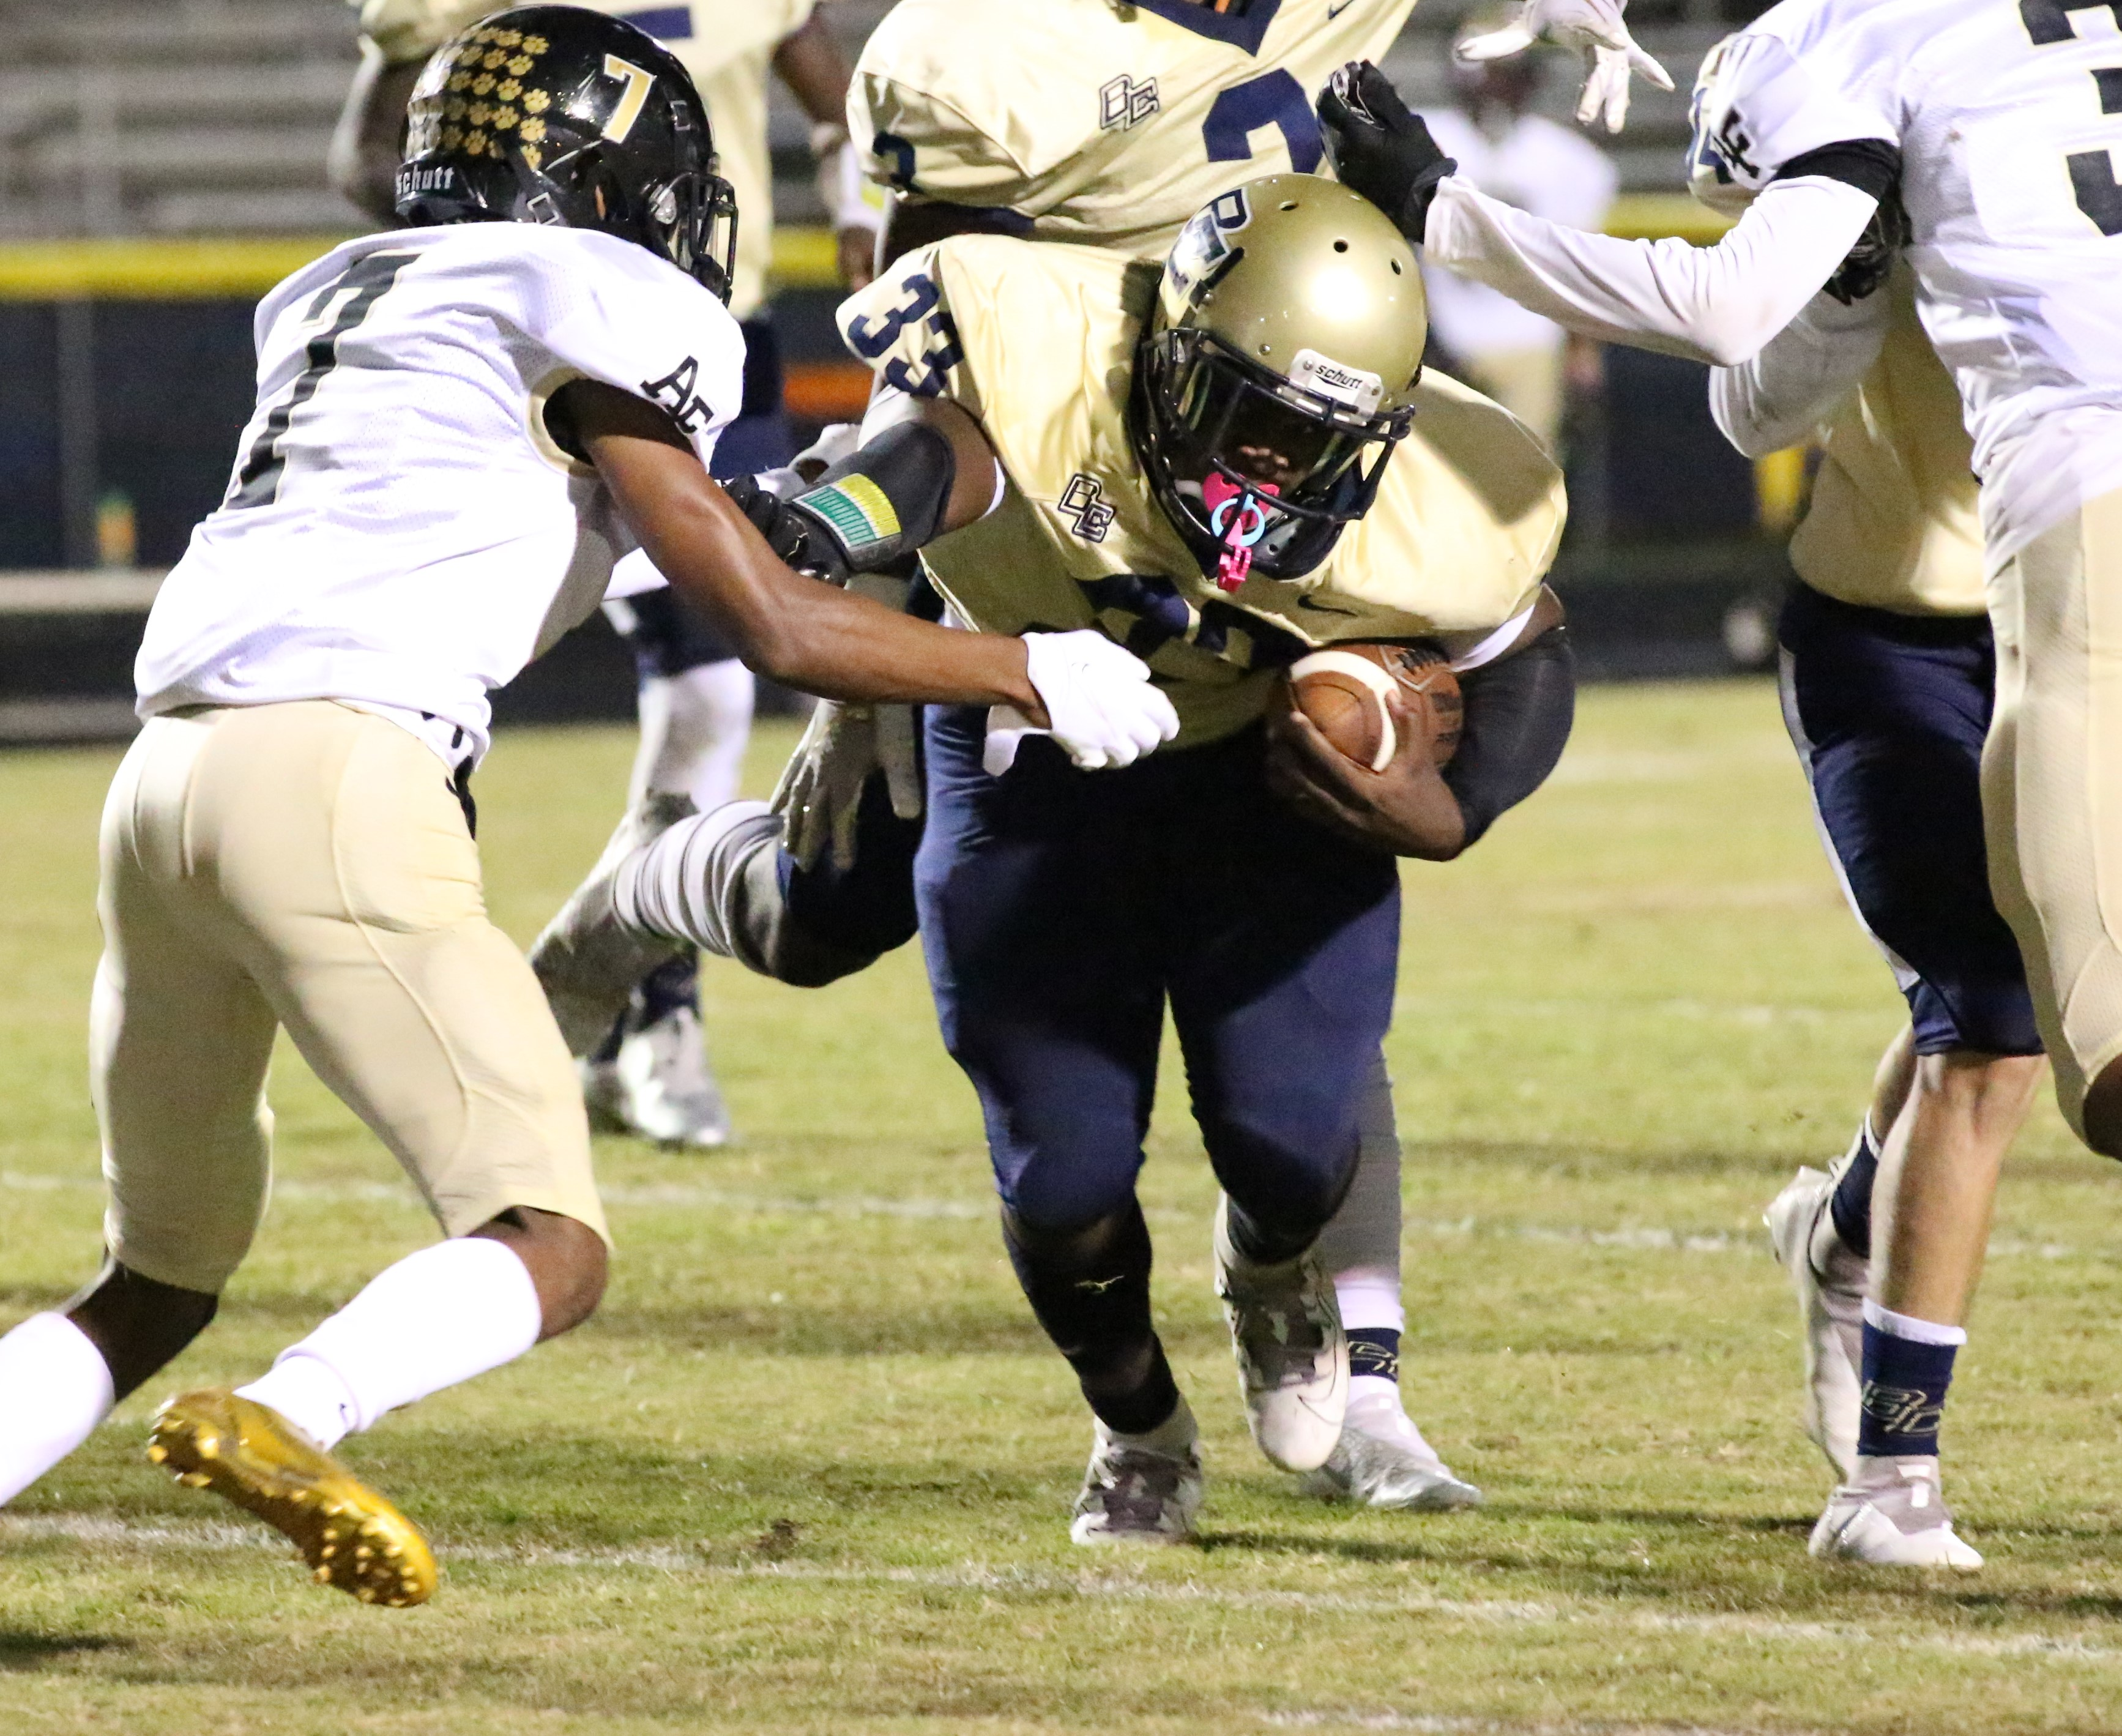 Dolphins come up short against Allendale-Fairfax, 26-14